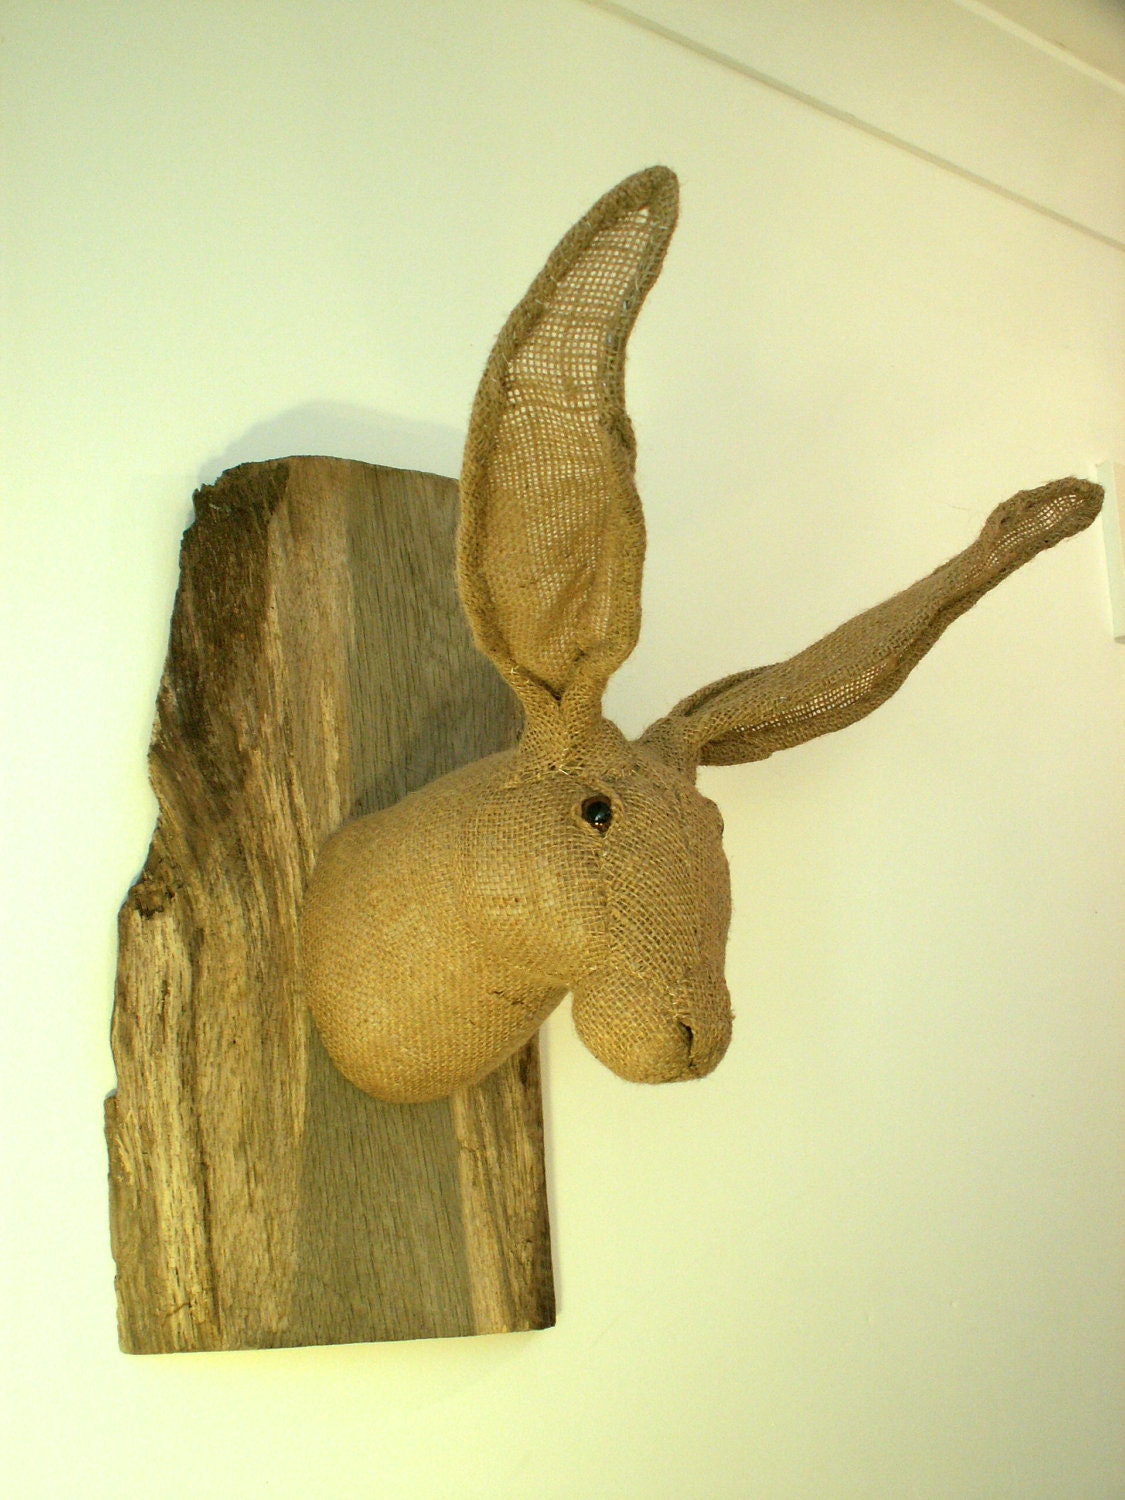 Hessian hare / animal textile sculpture. Vegetarian wall hanging. Trophy. Harmless hunting. MADE TO ORDER